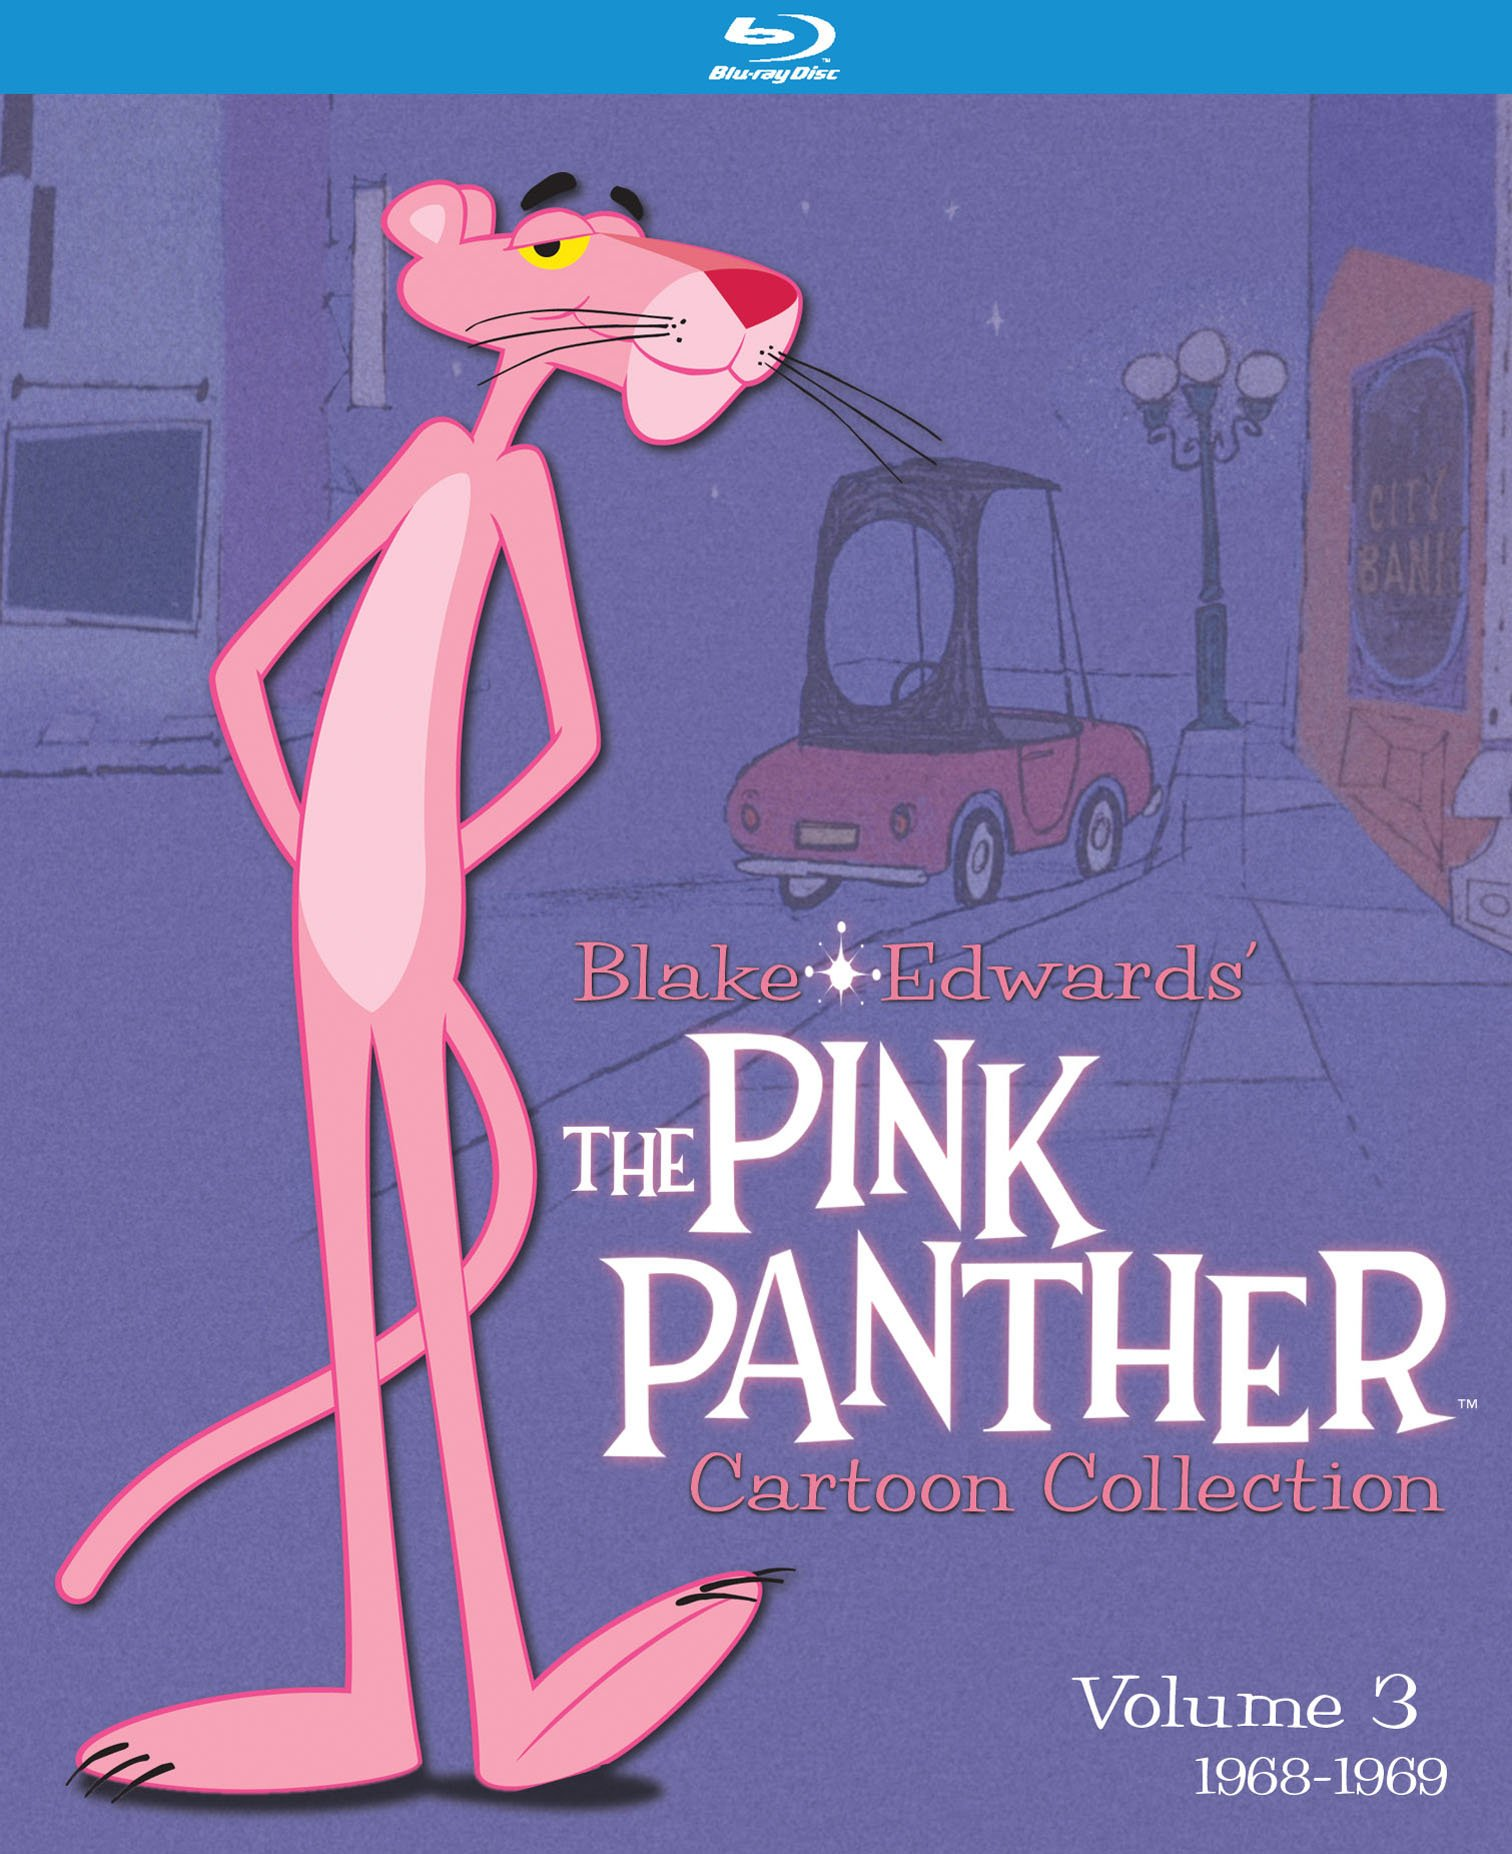 Blu-ray : The Pink Panther Cartoon Collection: Volume 3 (1968-1969) (Blu-ray)